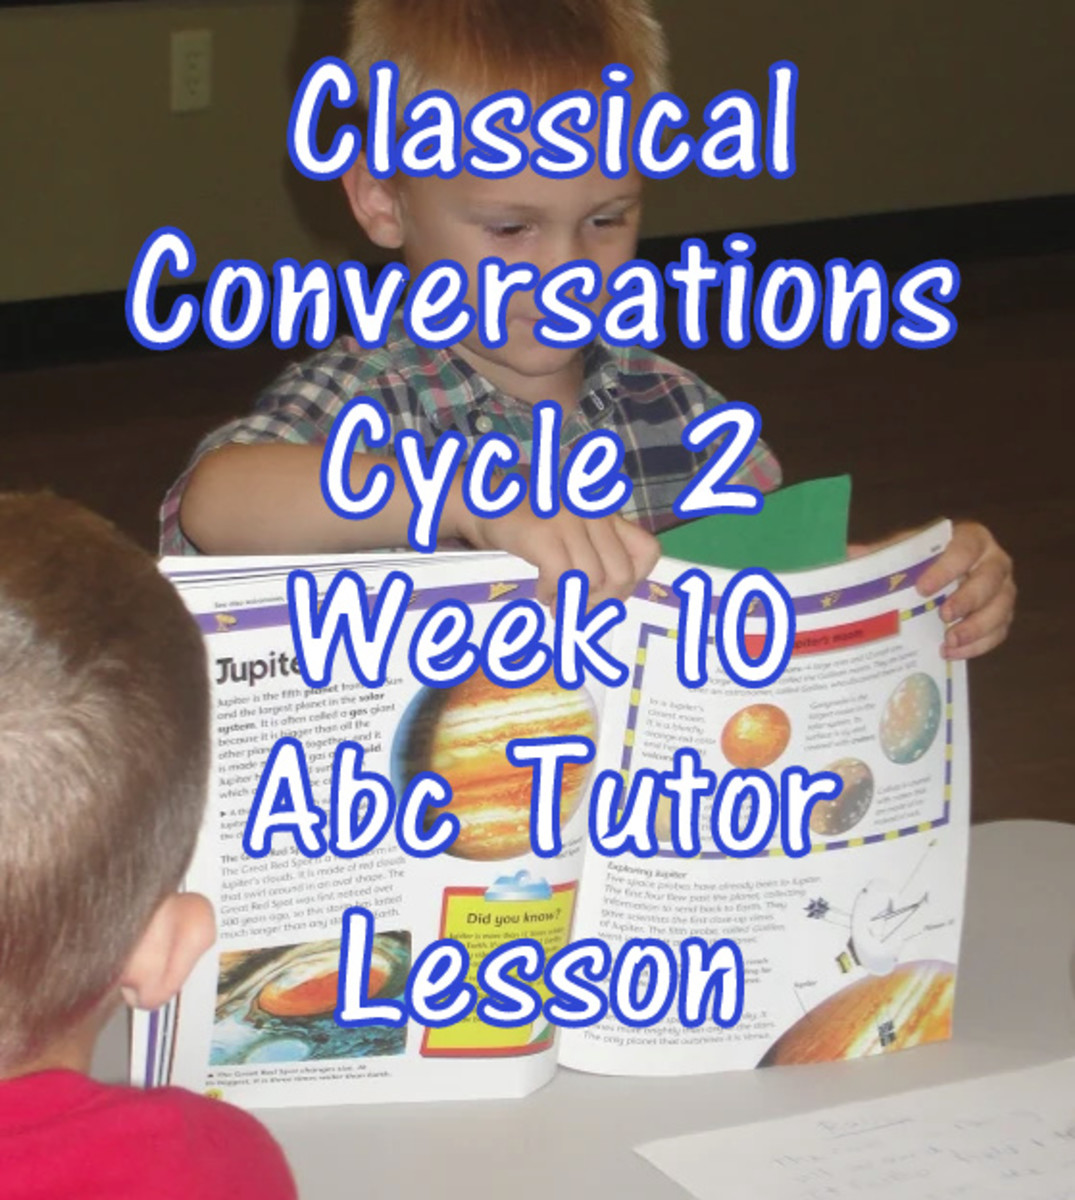 CC Cycle 2 Week 10 Lesson for Abecedarian Tutors